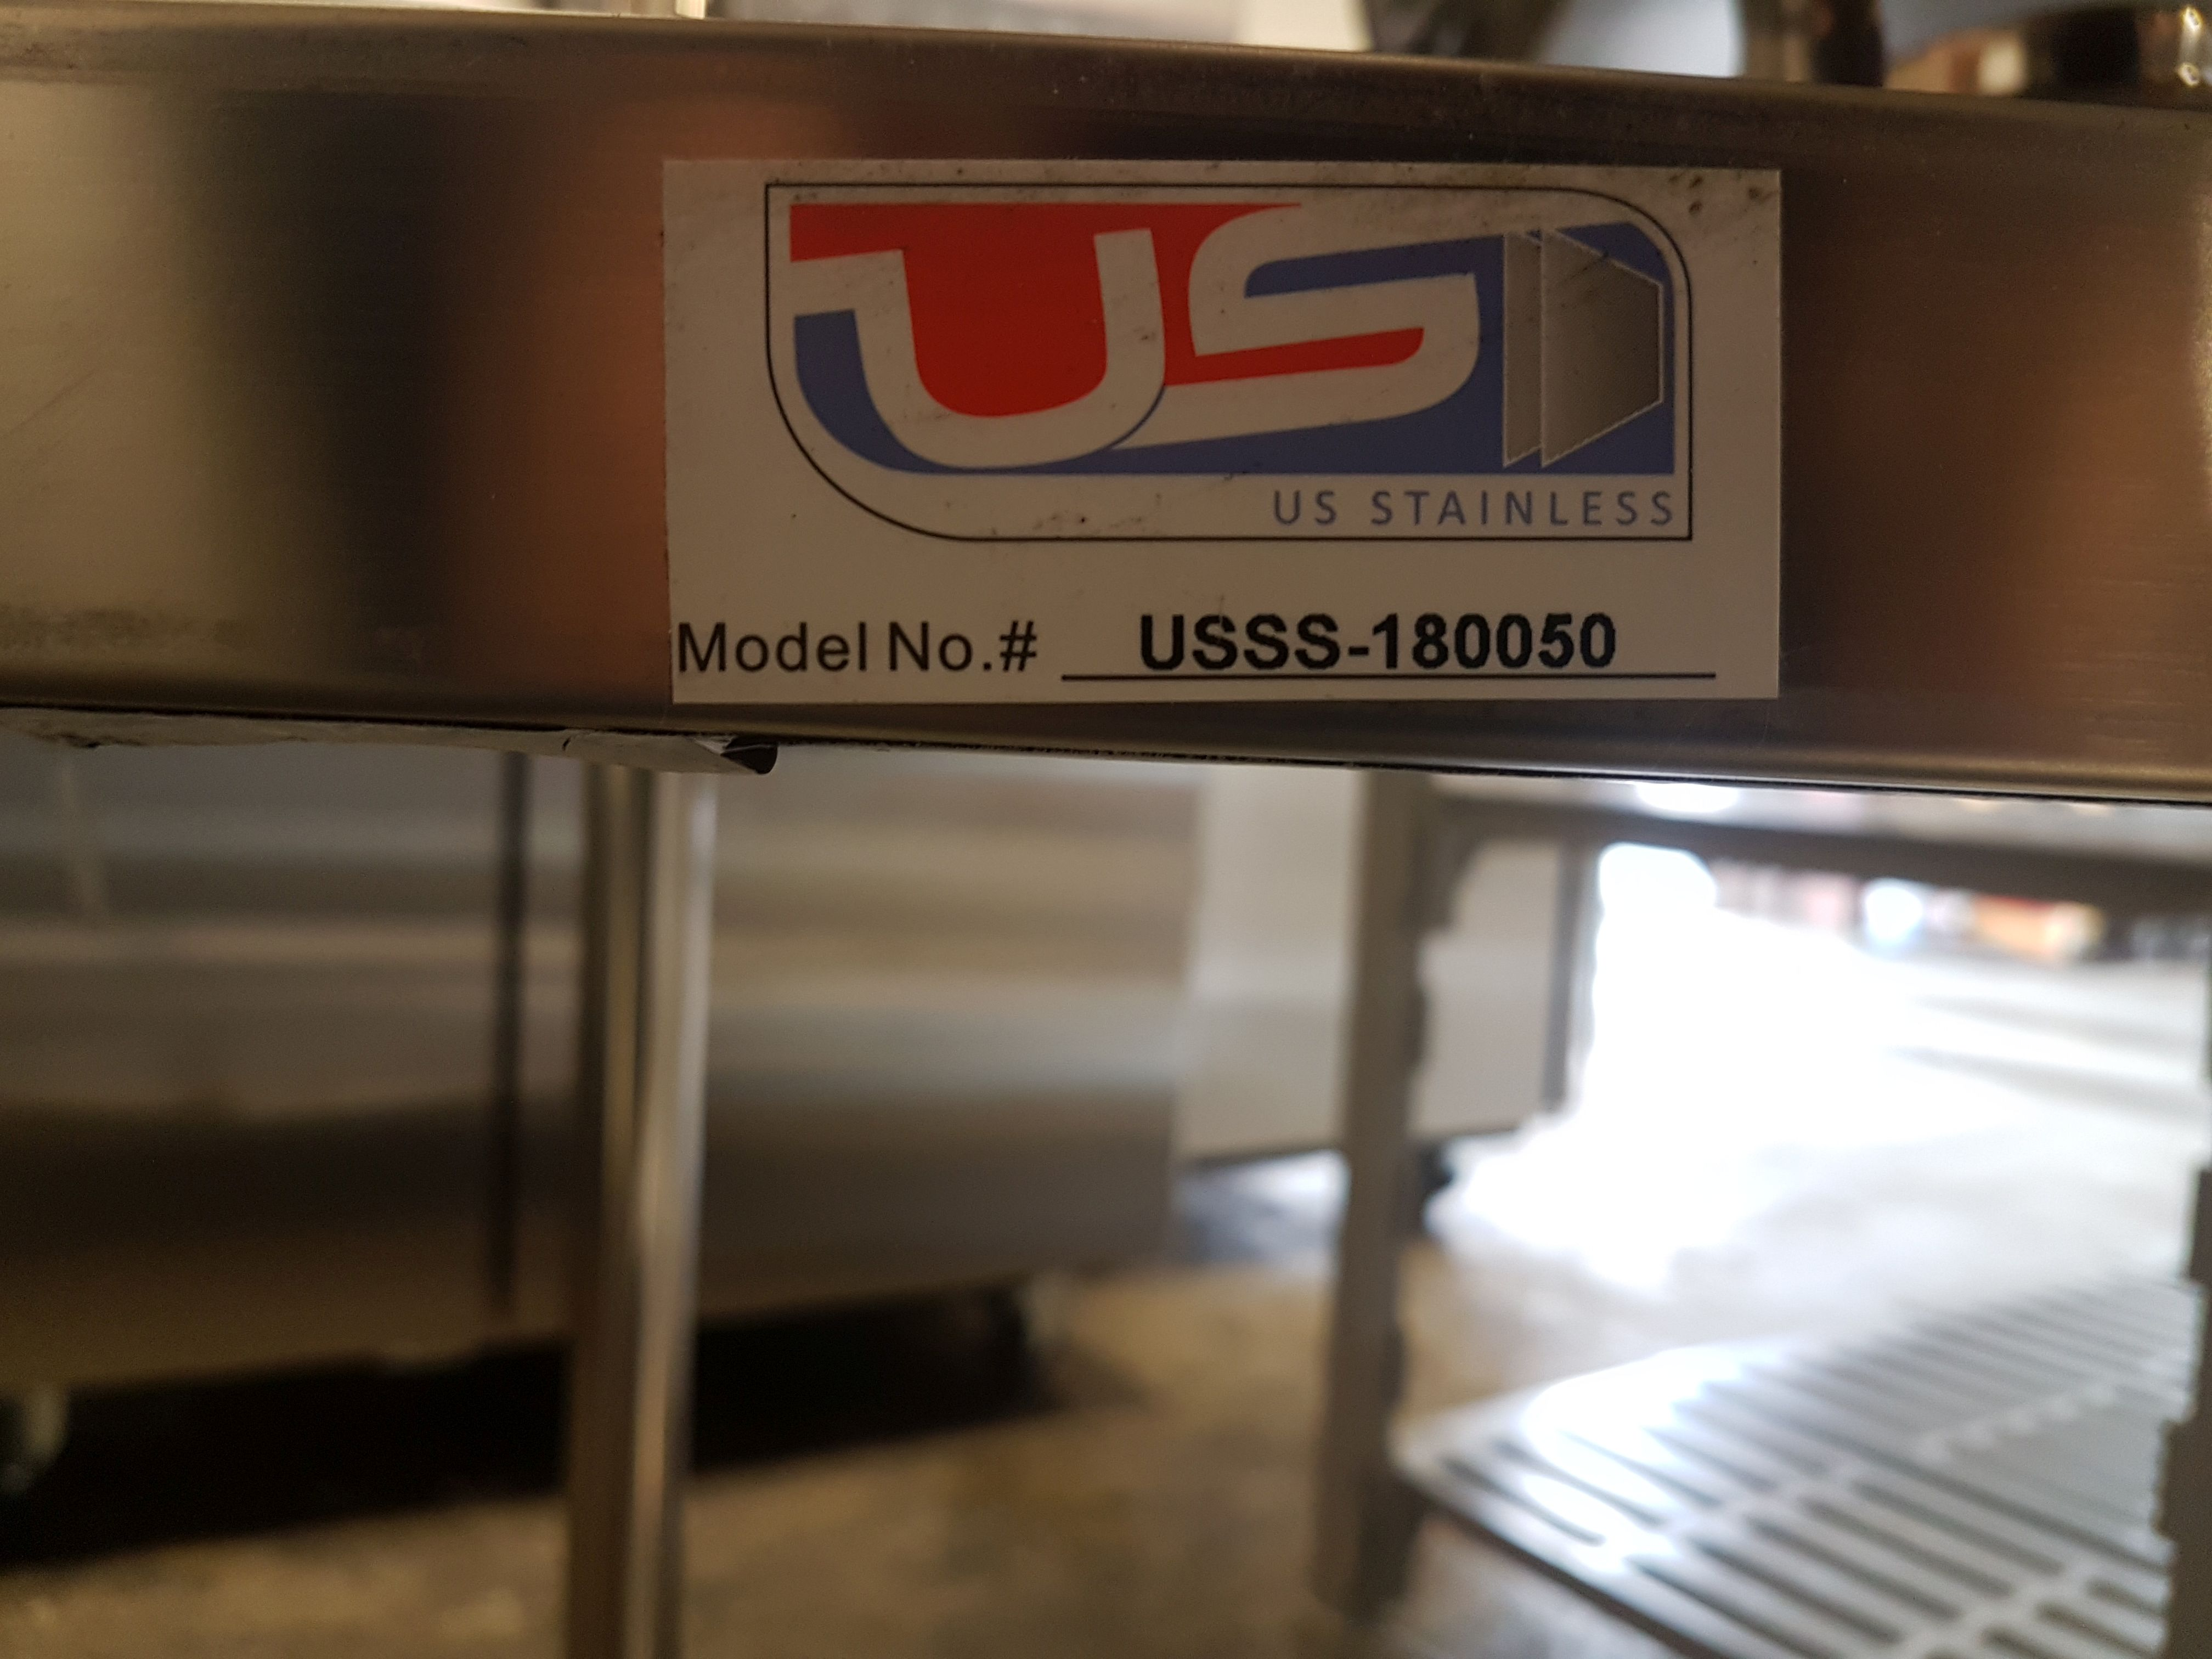 """Lot 9 - 19.5"""" x 70.5"""" x 72"""" All Stainless 4 Shelf Unit - USSS-180050"""